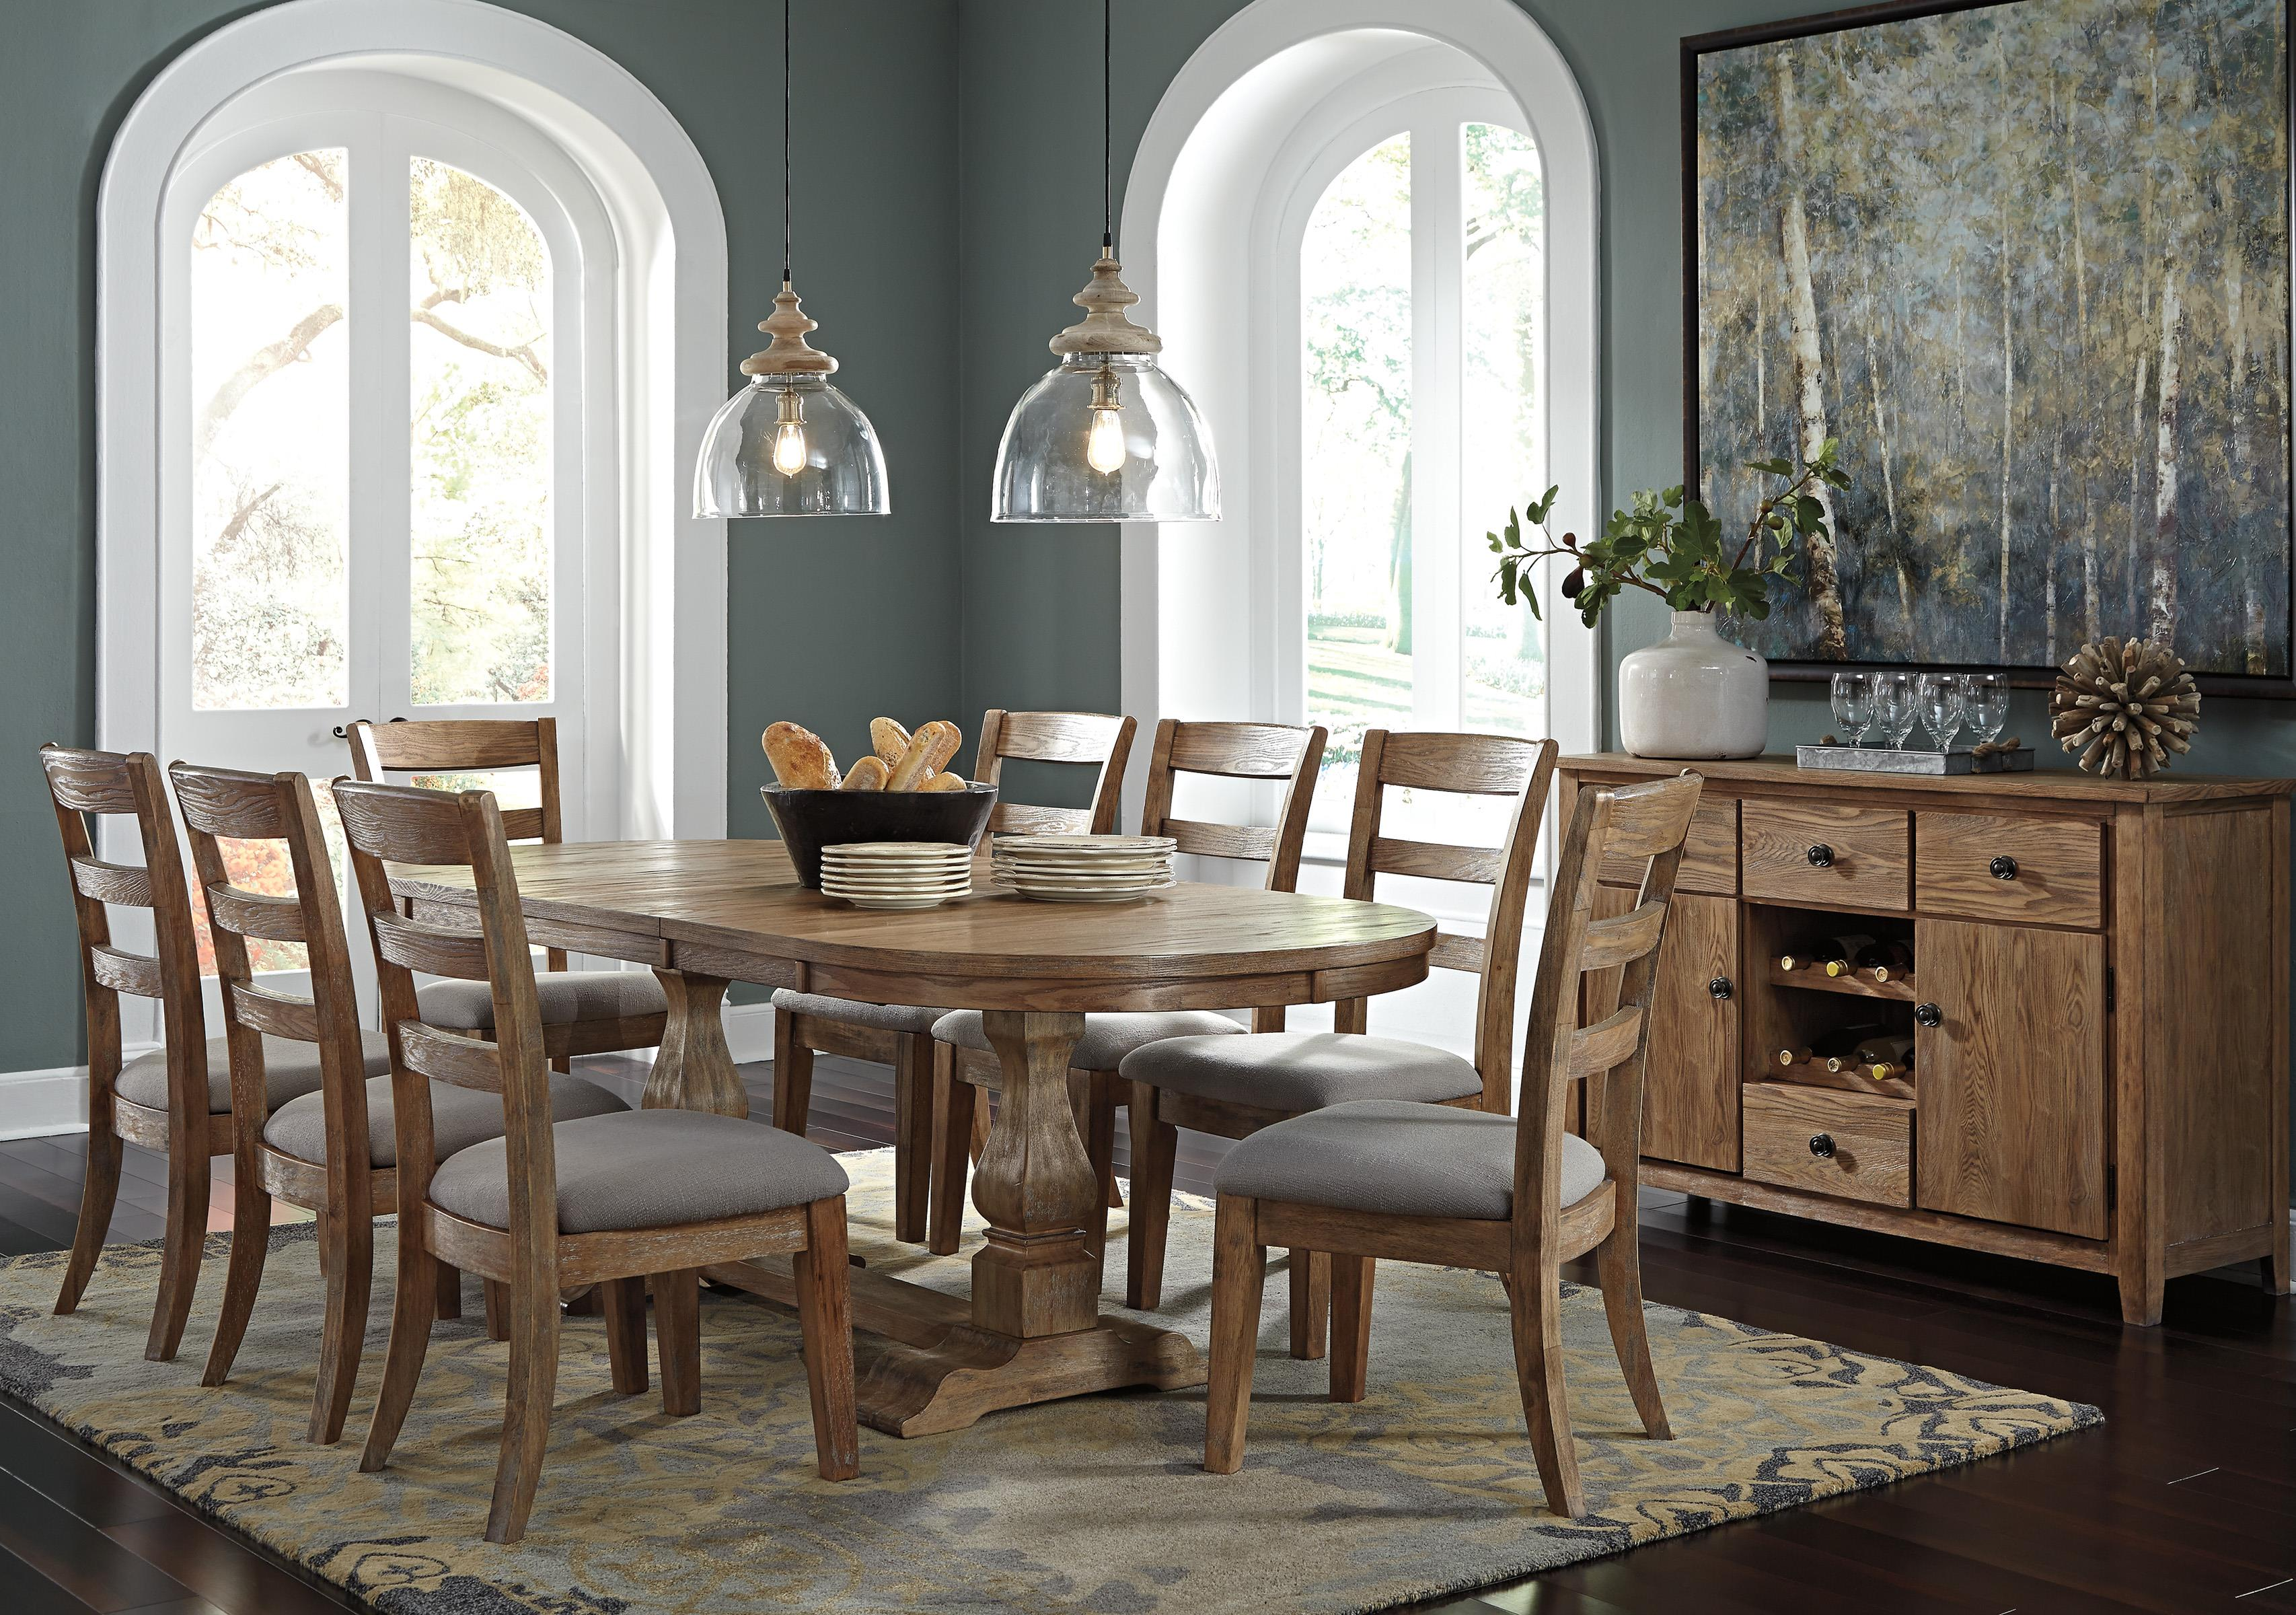 Signature Design by Ashley Danimore Casual Dining Room Group - Item Number: D473 Dining Room Group 2